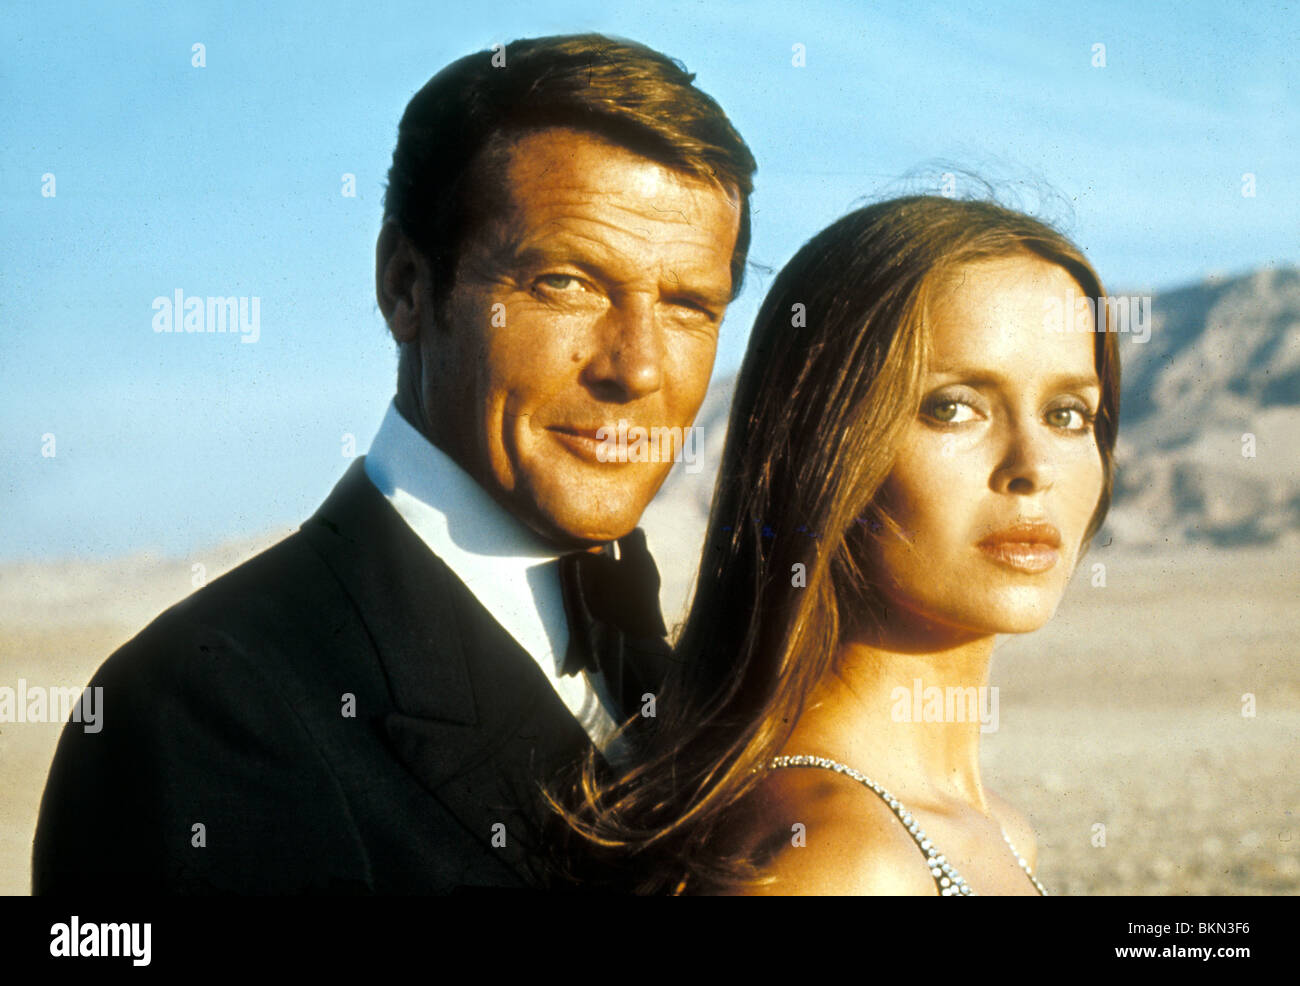 THE SPY WHO LOVED ME (1977) ROGER MOORE, BARBARA BACH CREDIT EON SLM 079 - Stock Image